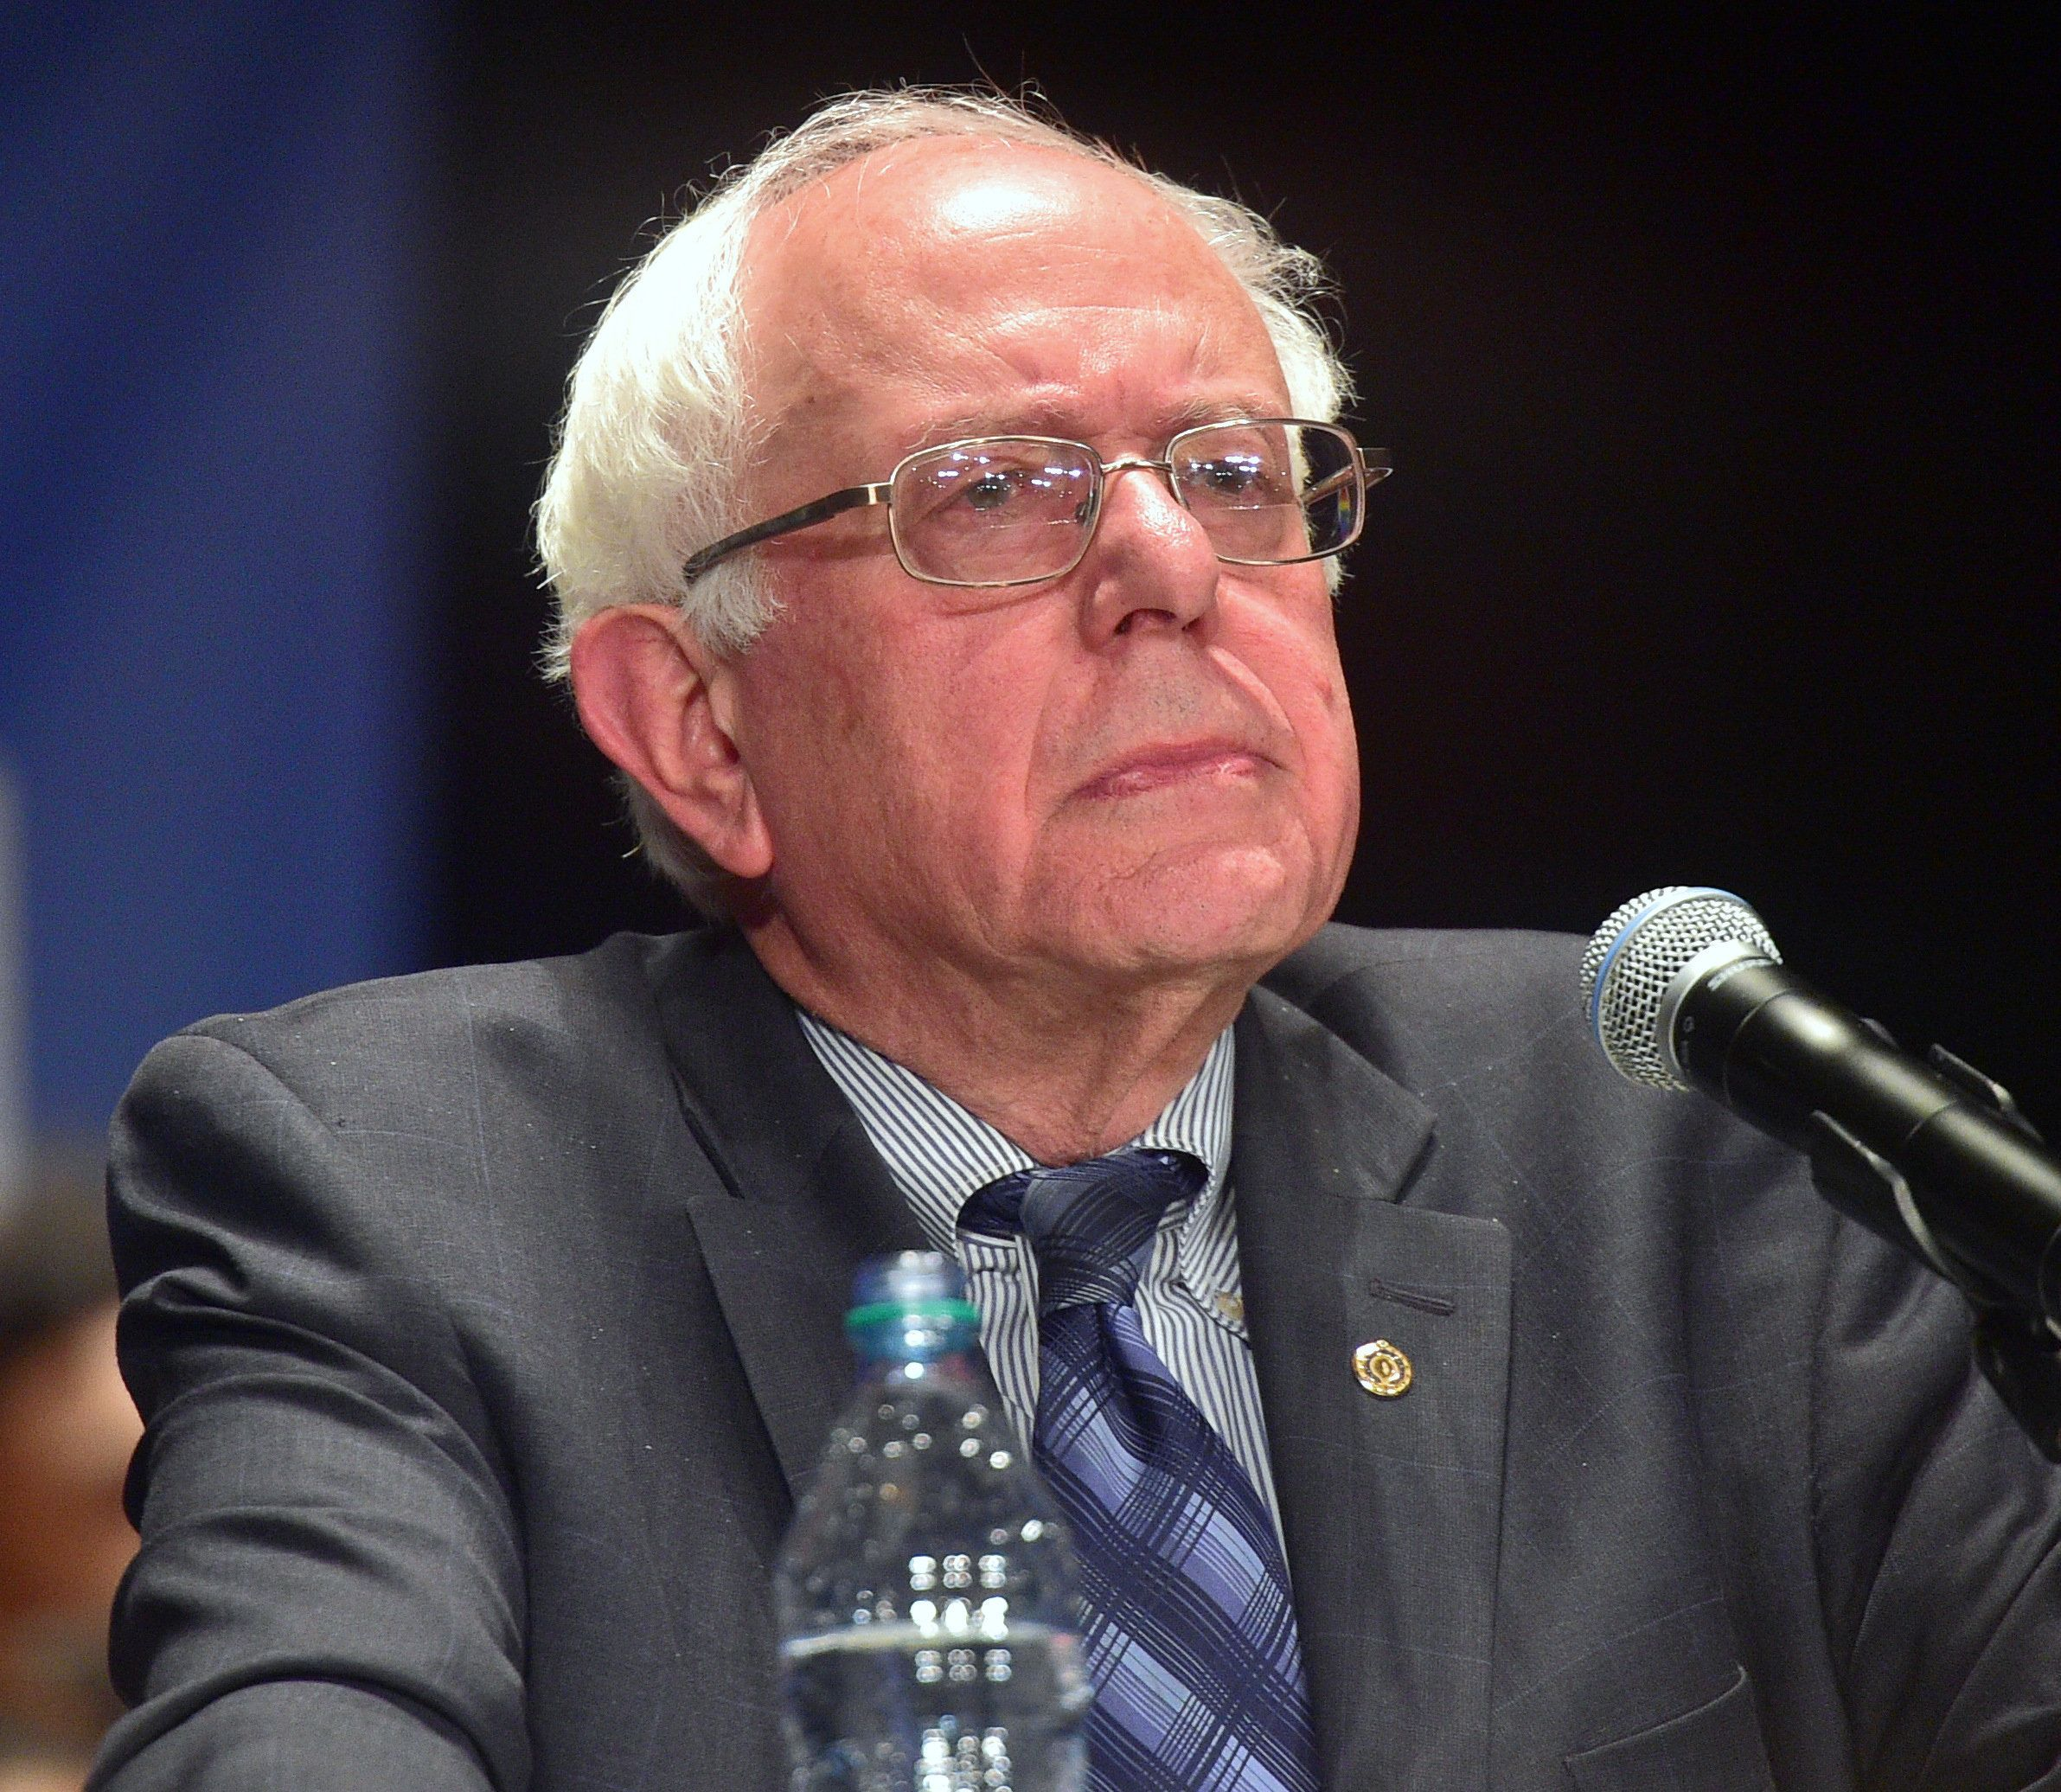 Sanders outperformed top Republican candidates in a November Quinnipiac poll of general election voters.